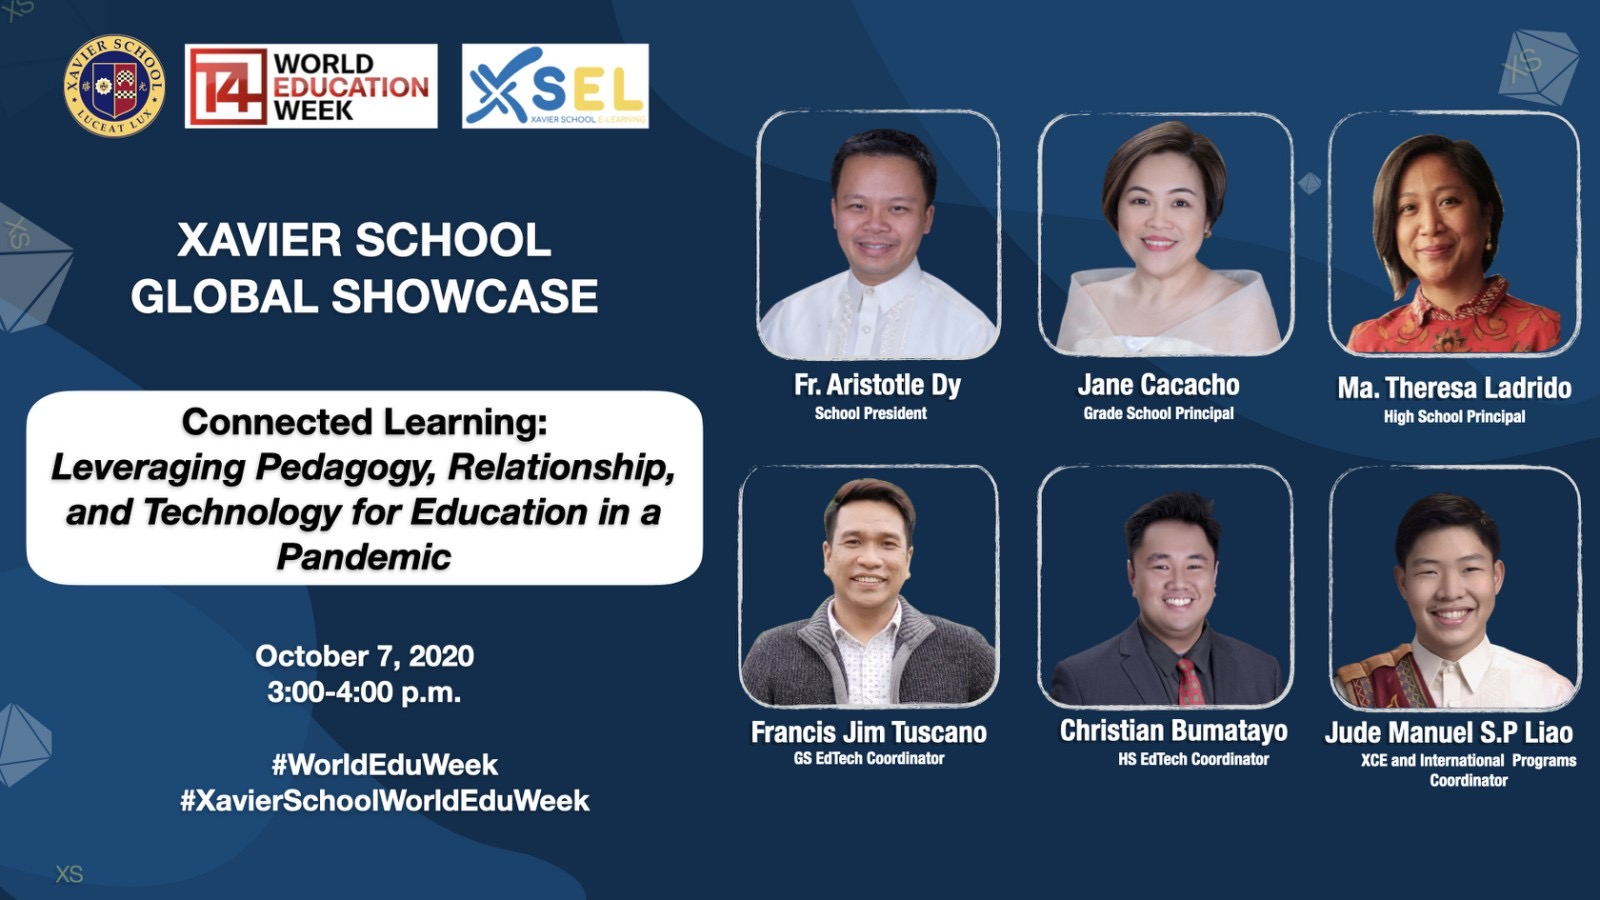 Connected Learning, Xavier School Showcases XSEL in World Education Week